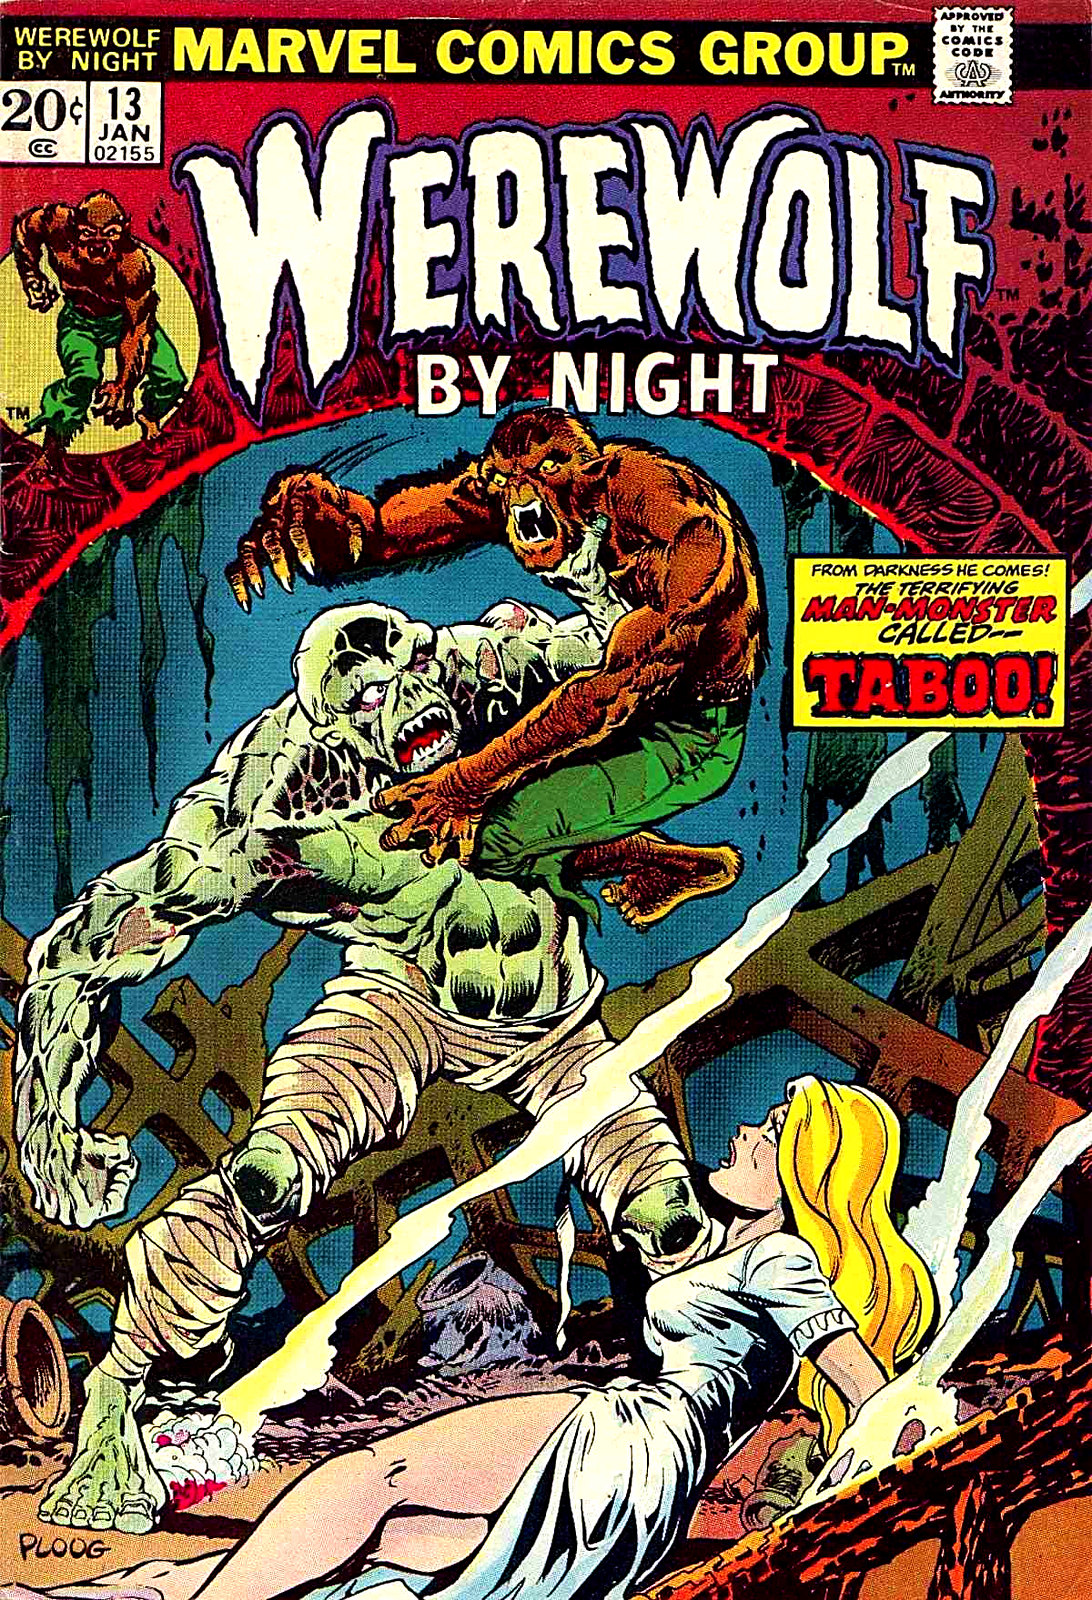 Vintage Comic Book Cover Art : Retrospace comic books horror covers